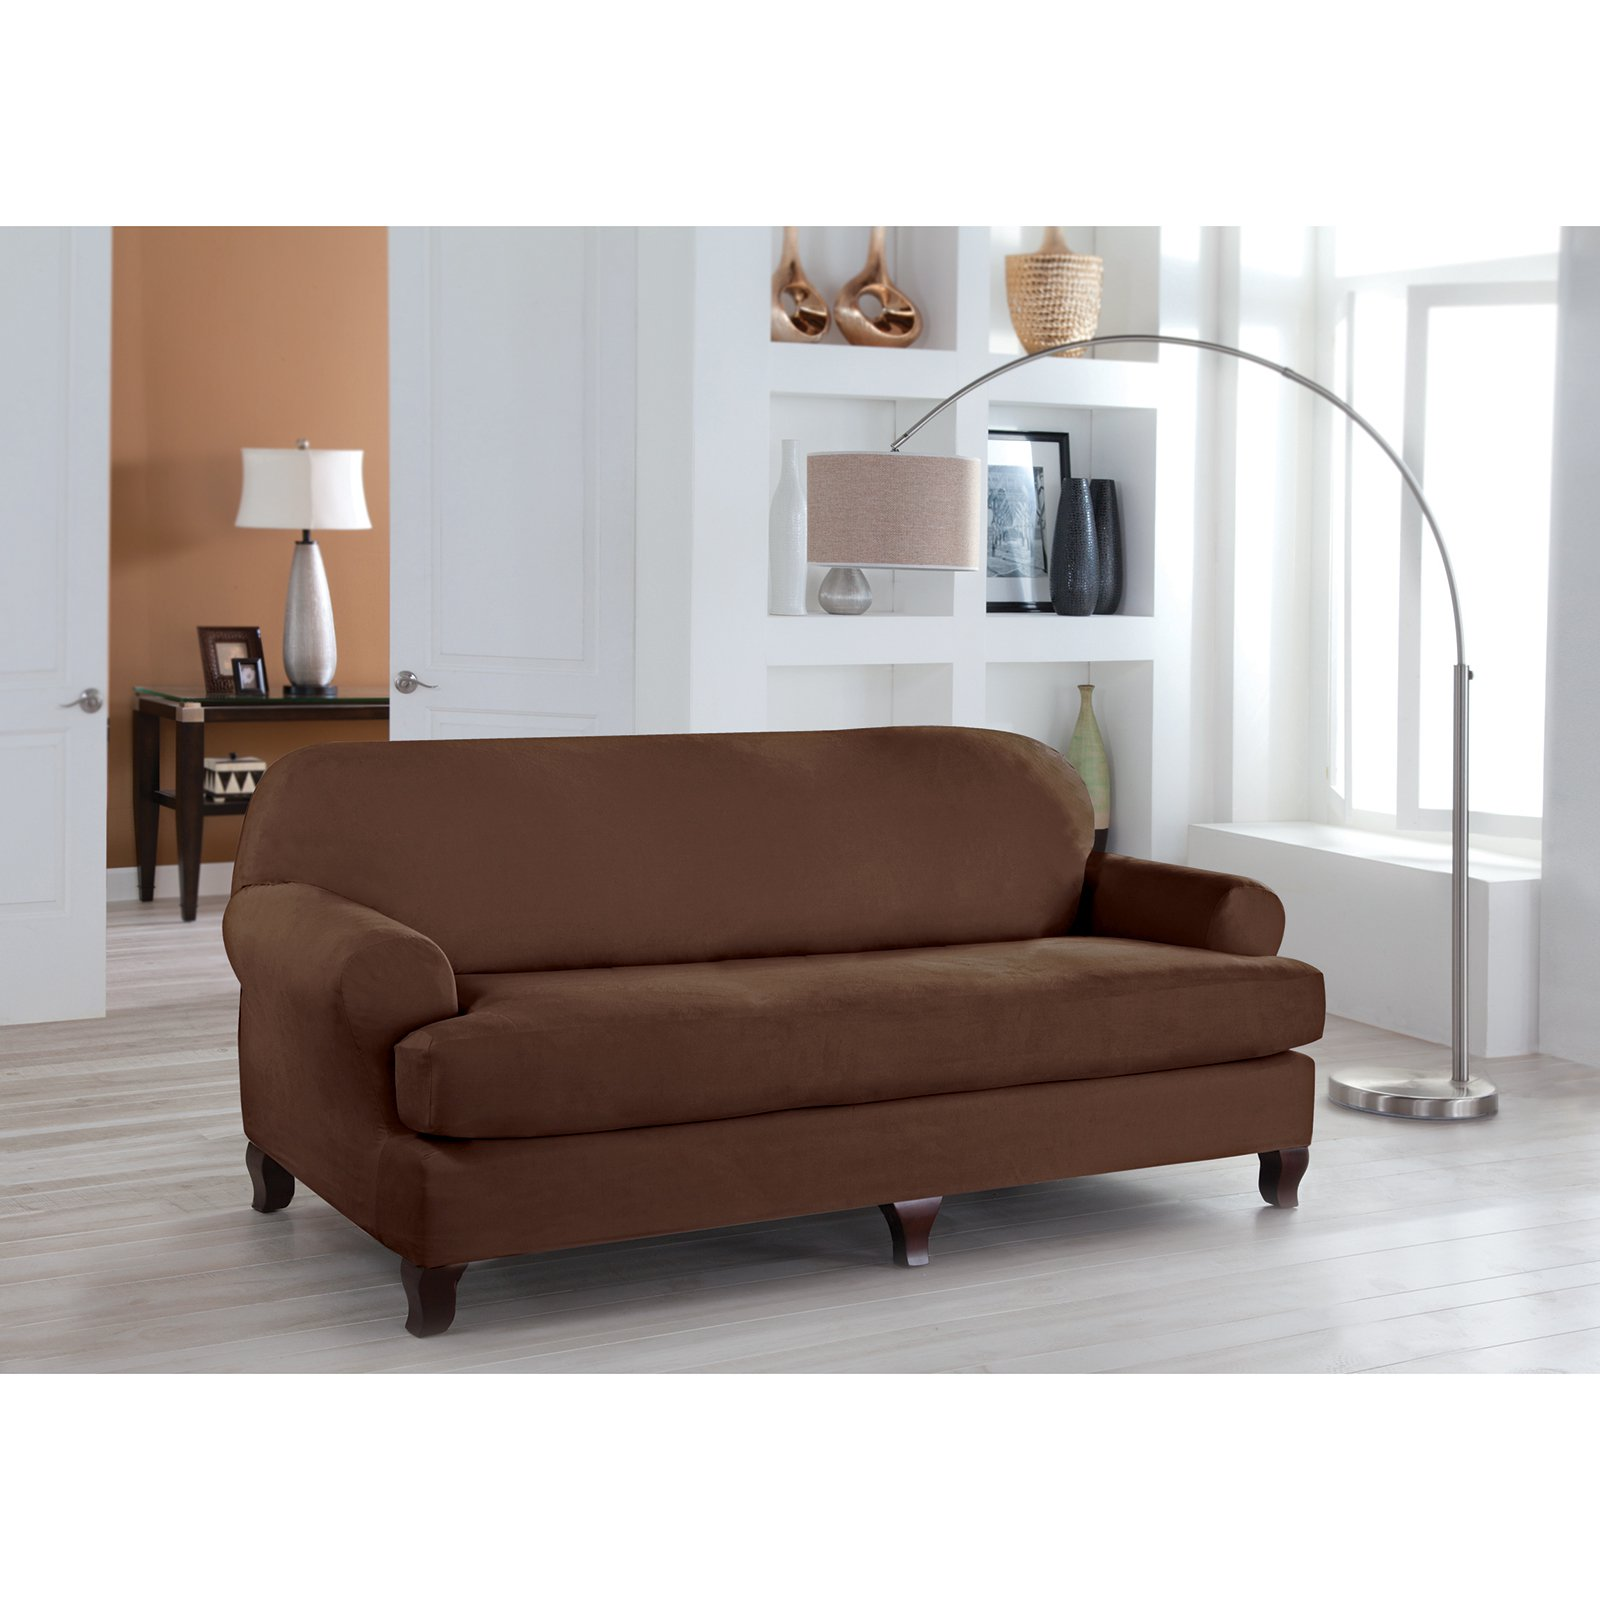 Tailor Fit Stretch Fit Sofa Slipcover Walmart